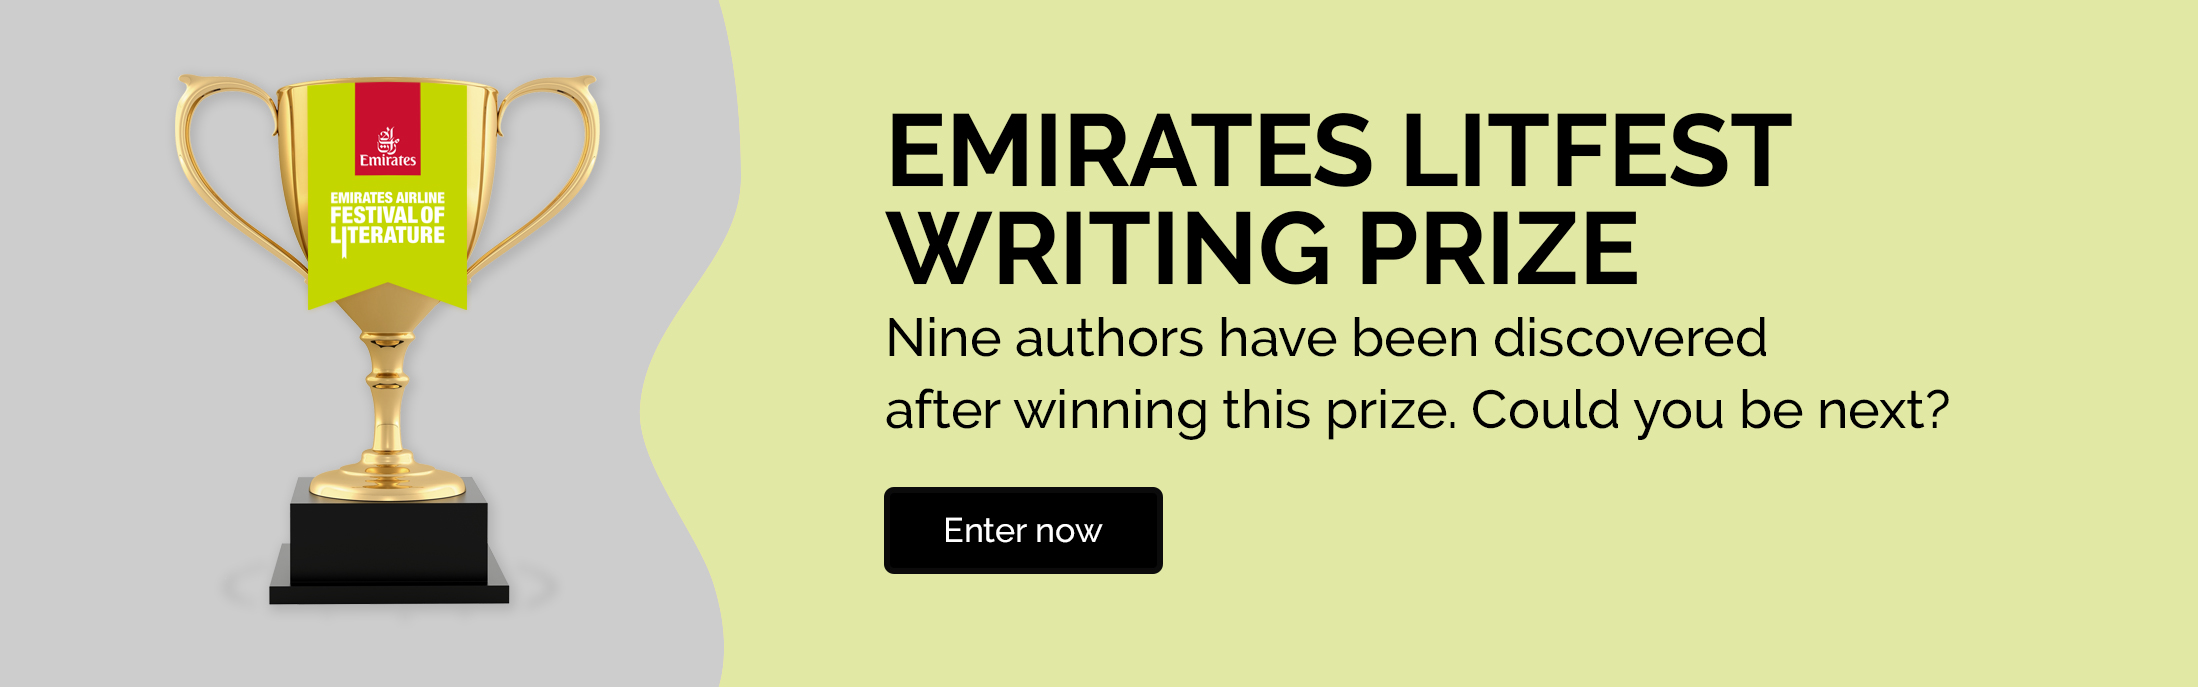 Emirates LitFest Writing Prize -ENG